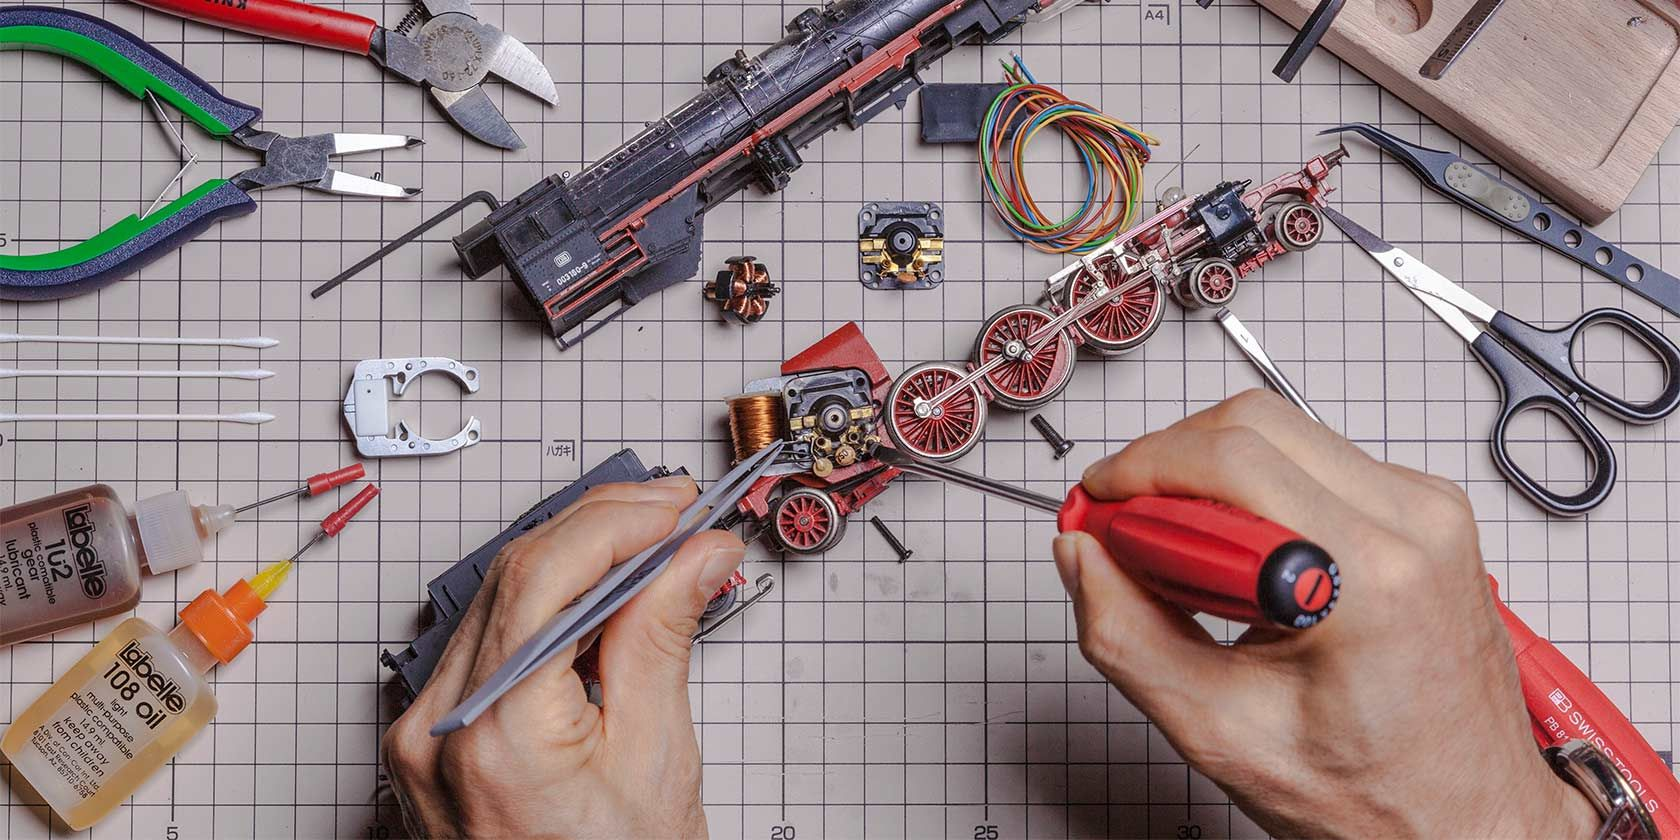 Quickly Find DIY Electronic Parts With These 3 Search Engines